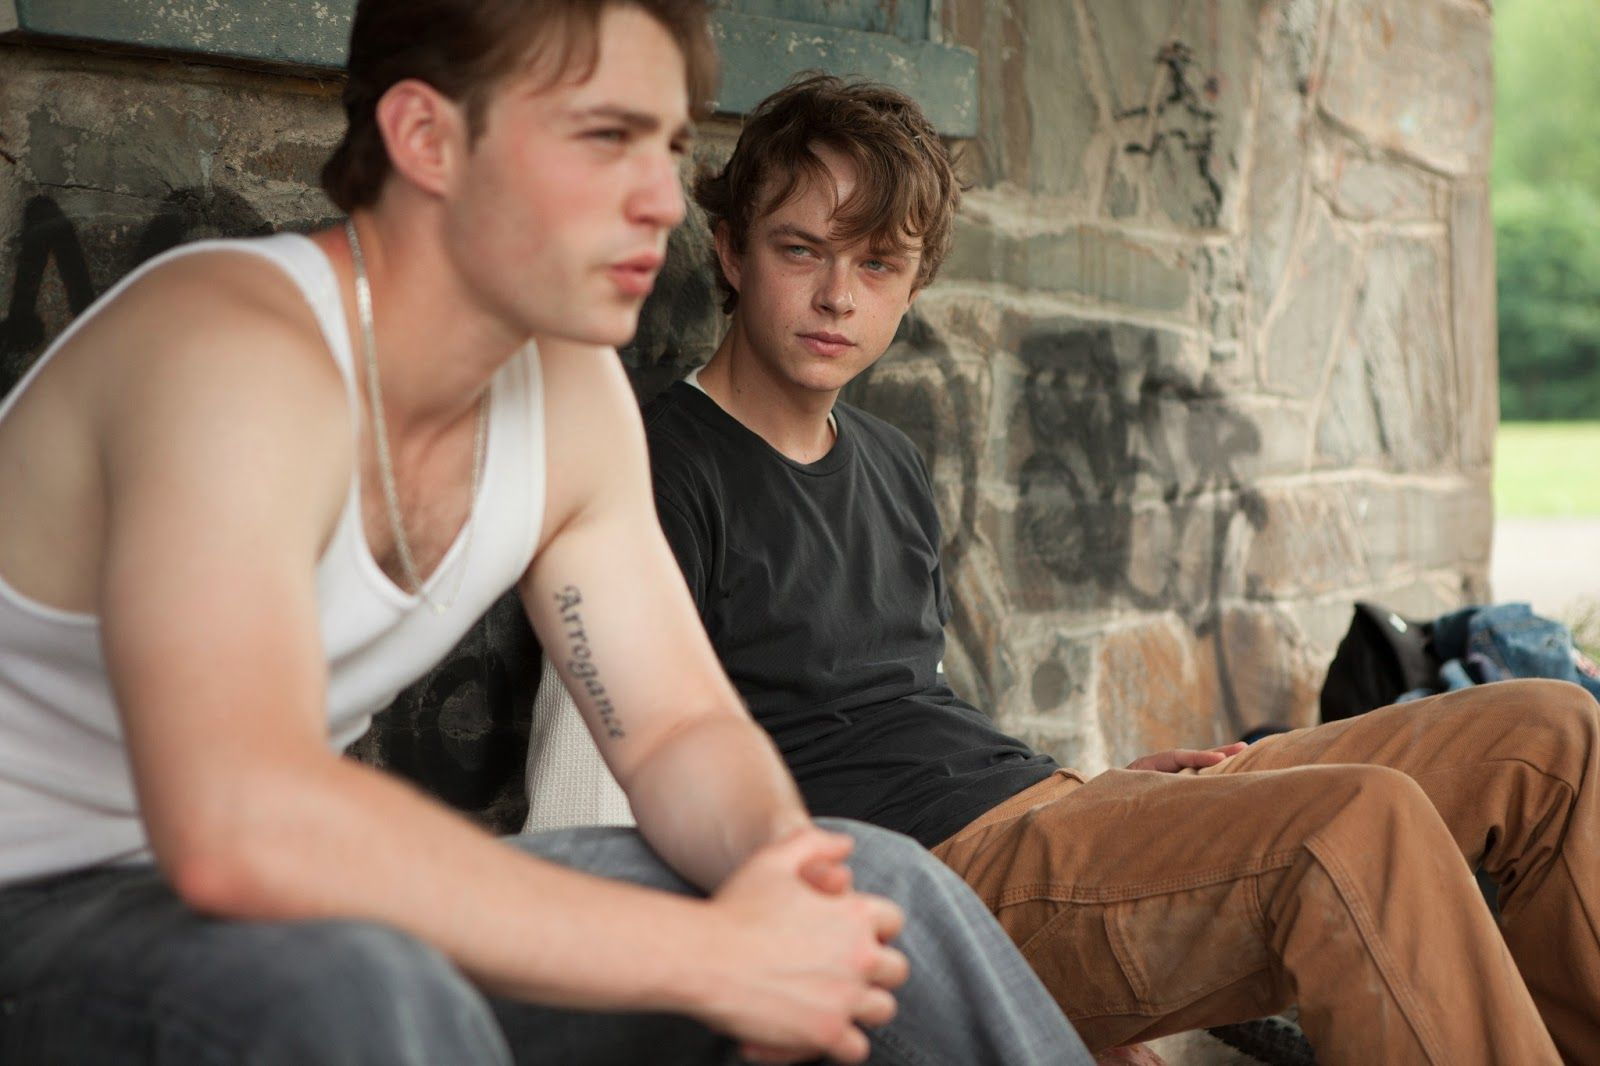 The Place Beyond the Pines - Emory Cohen, Dane DeHaan